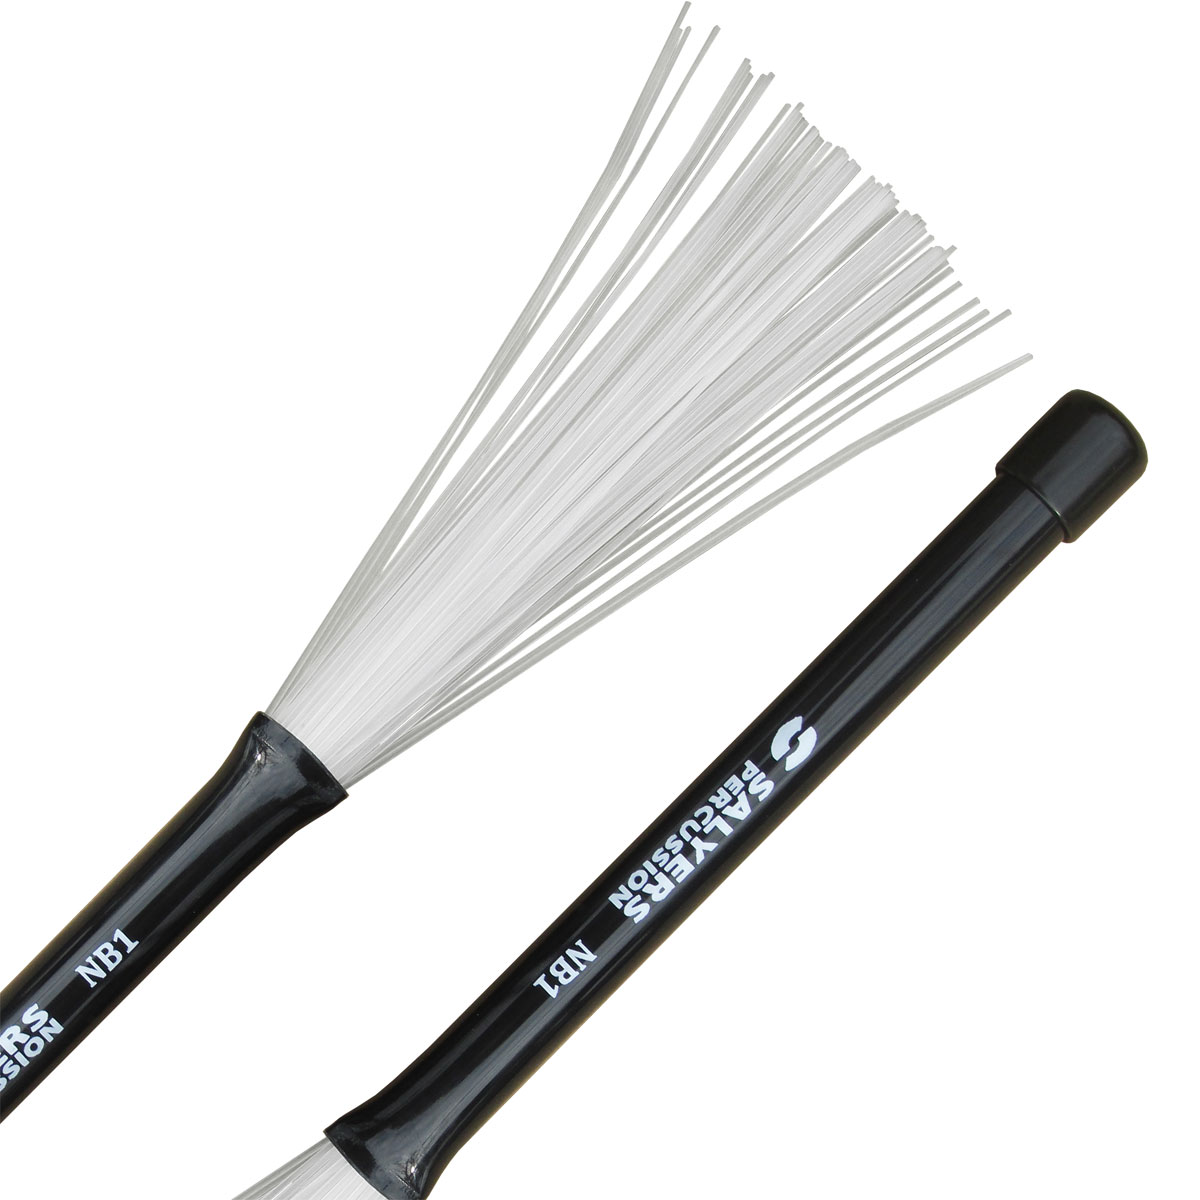 Salyers Percussion Standard Retractable Nylon Brushes